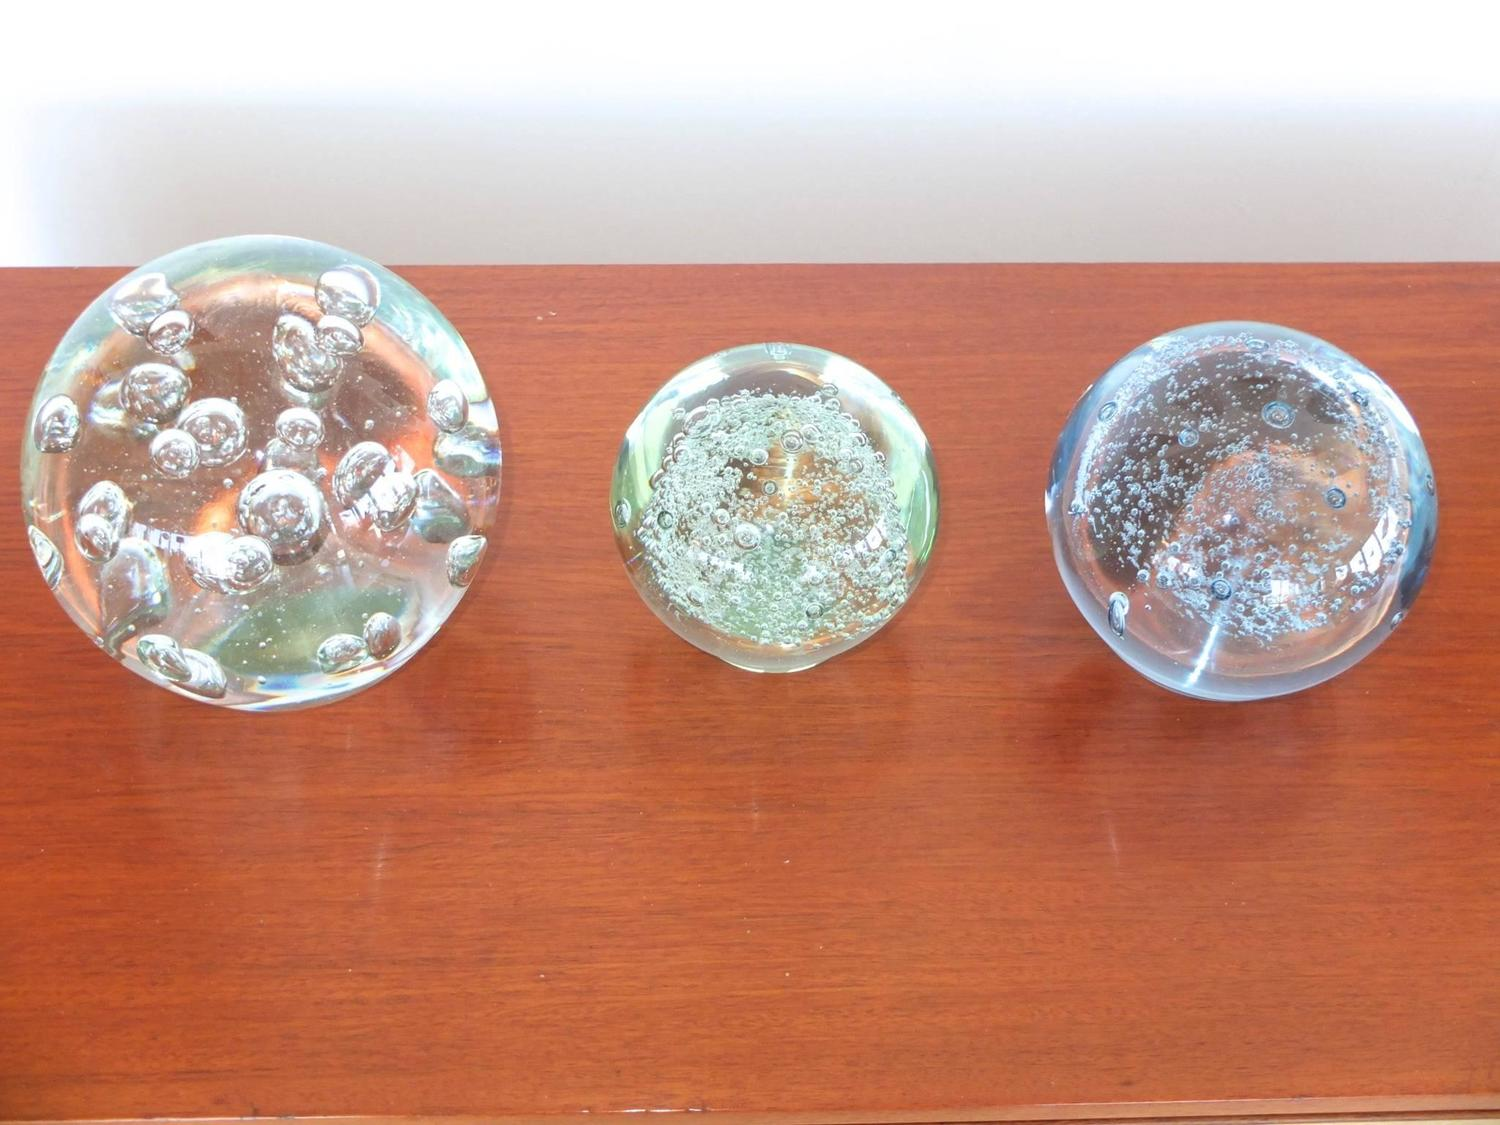 Vintage glass ball paperweights with controlled bubble